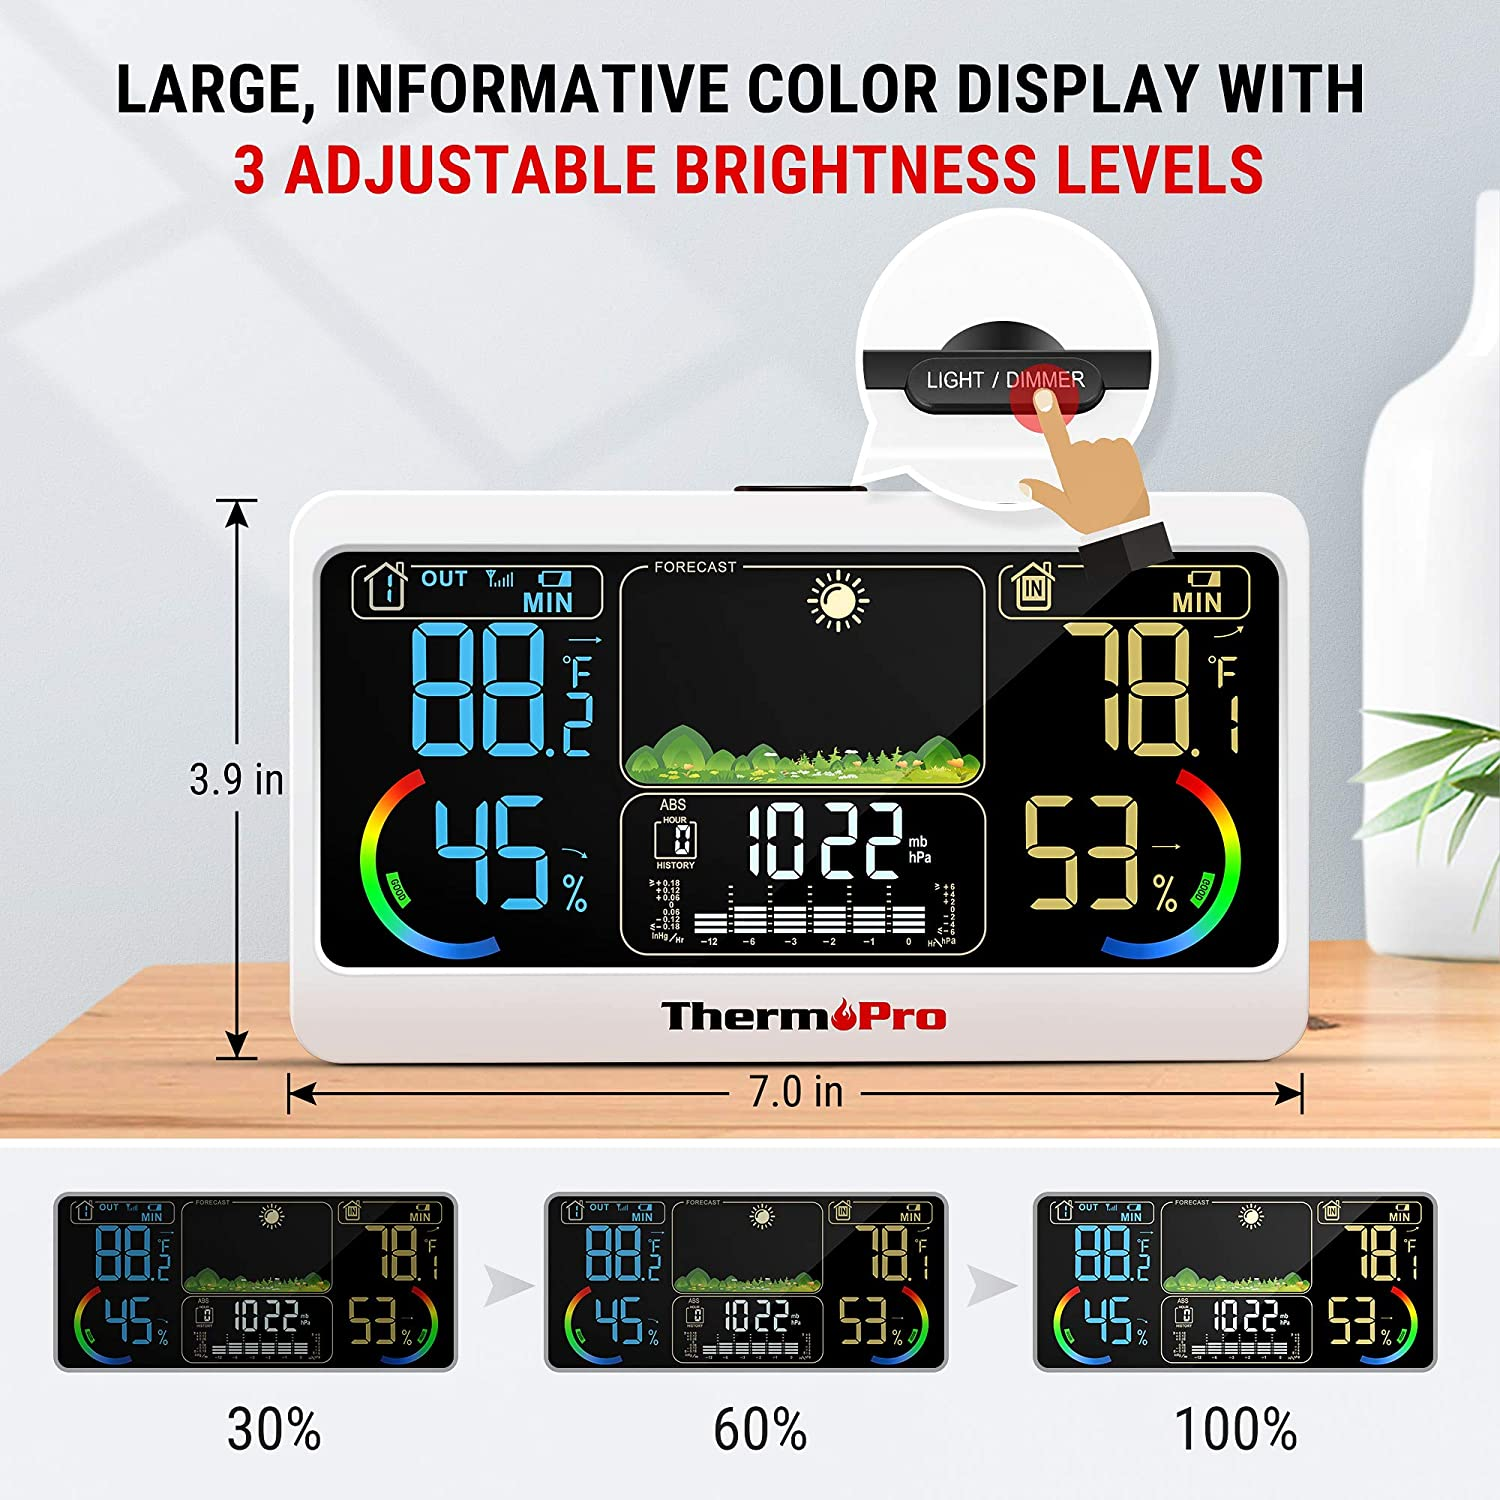 Patio, Lawn & Garden Weather Stations ghdonat.com ThermoPro TP68B ...